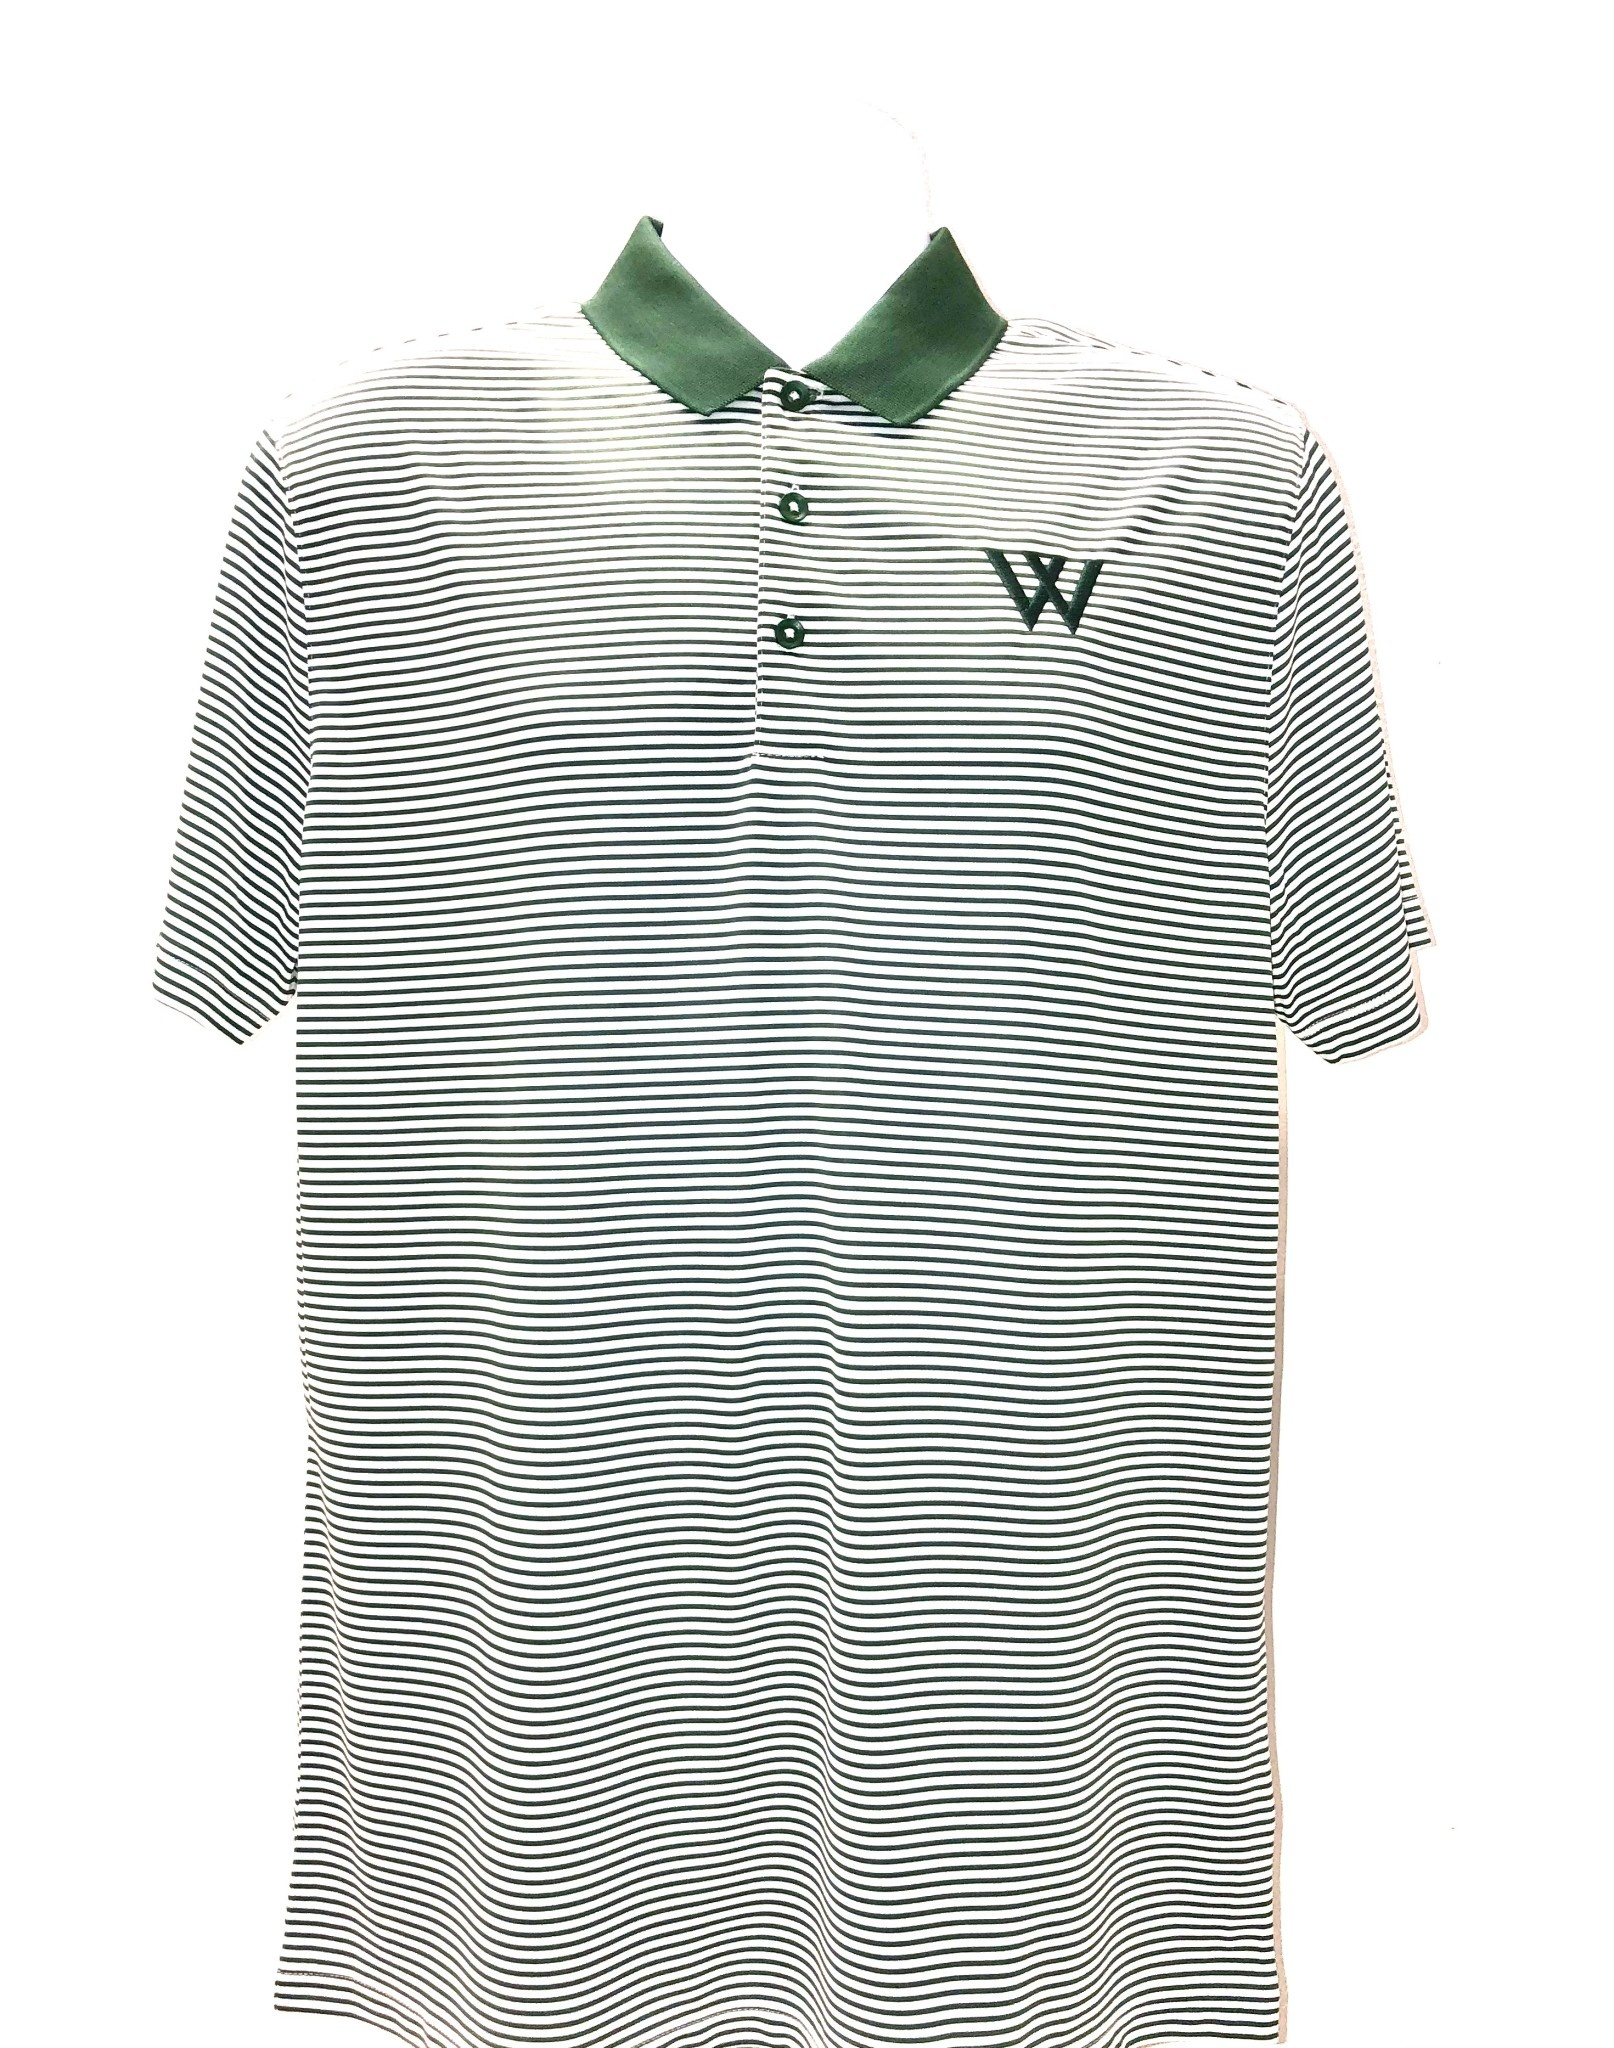 Nike Polo: Nike Victory Mini Stripe Green & White